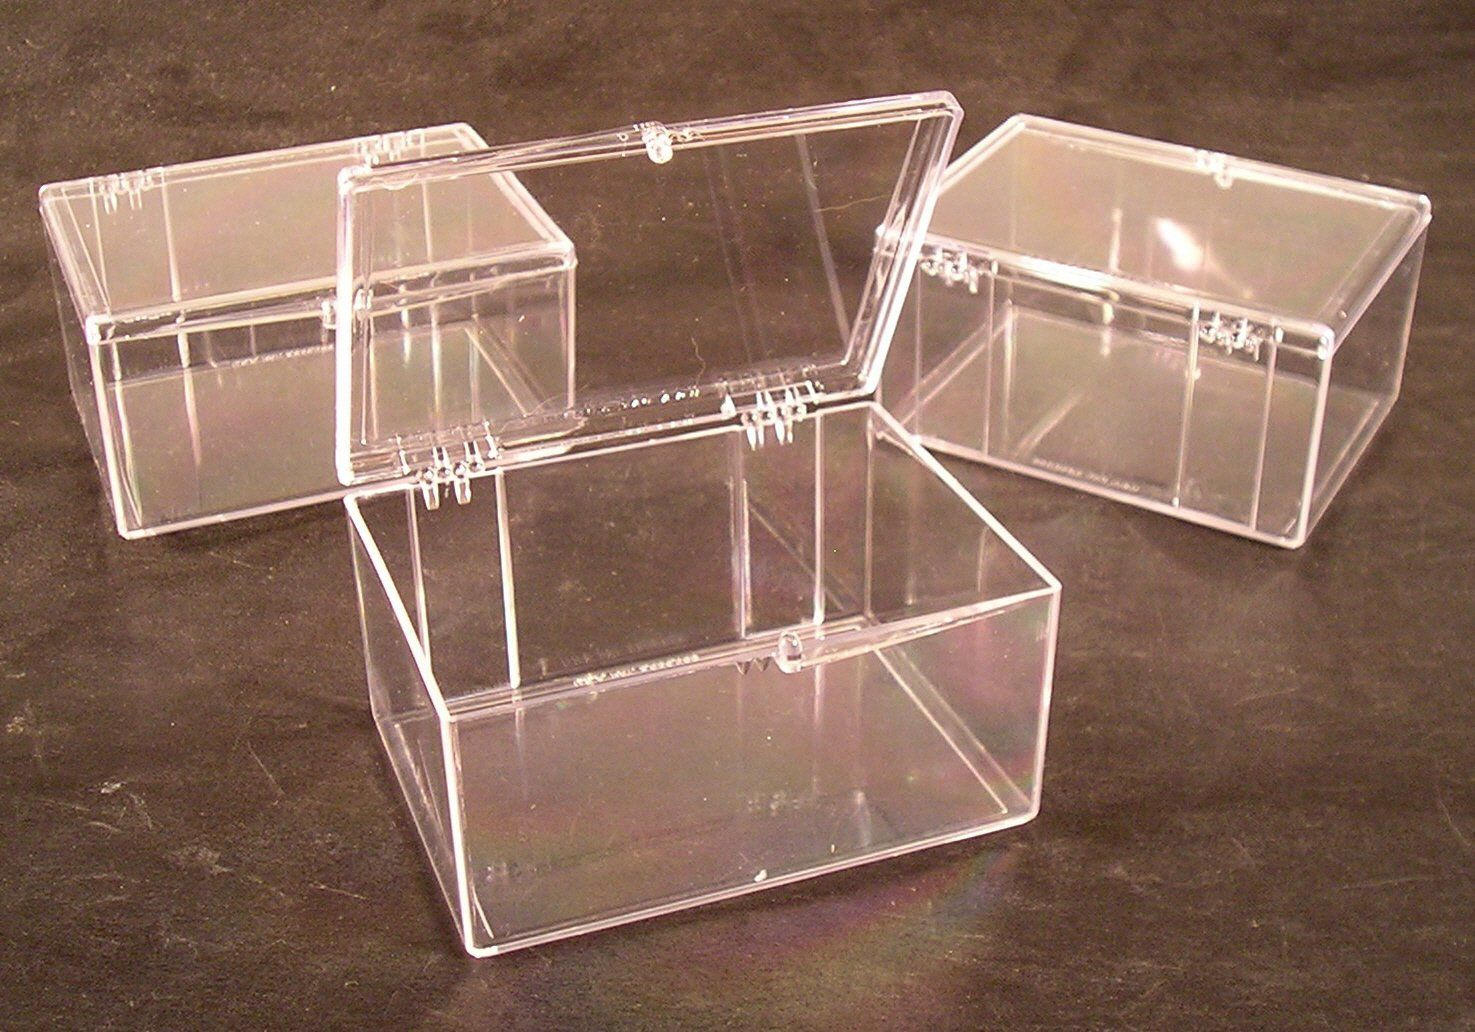 Amazon Com Lot Of 3 Crystal Clear Hinged Plastic Trading Card Storage Boxes 100 Ct Made In Th Trading Card Storage Trading Card Storage Boxes Card Storage